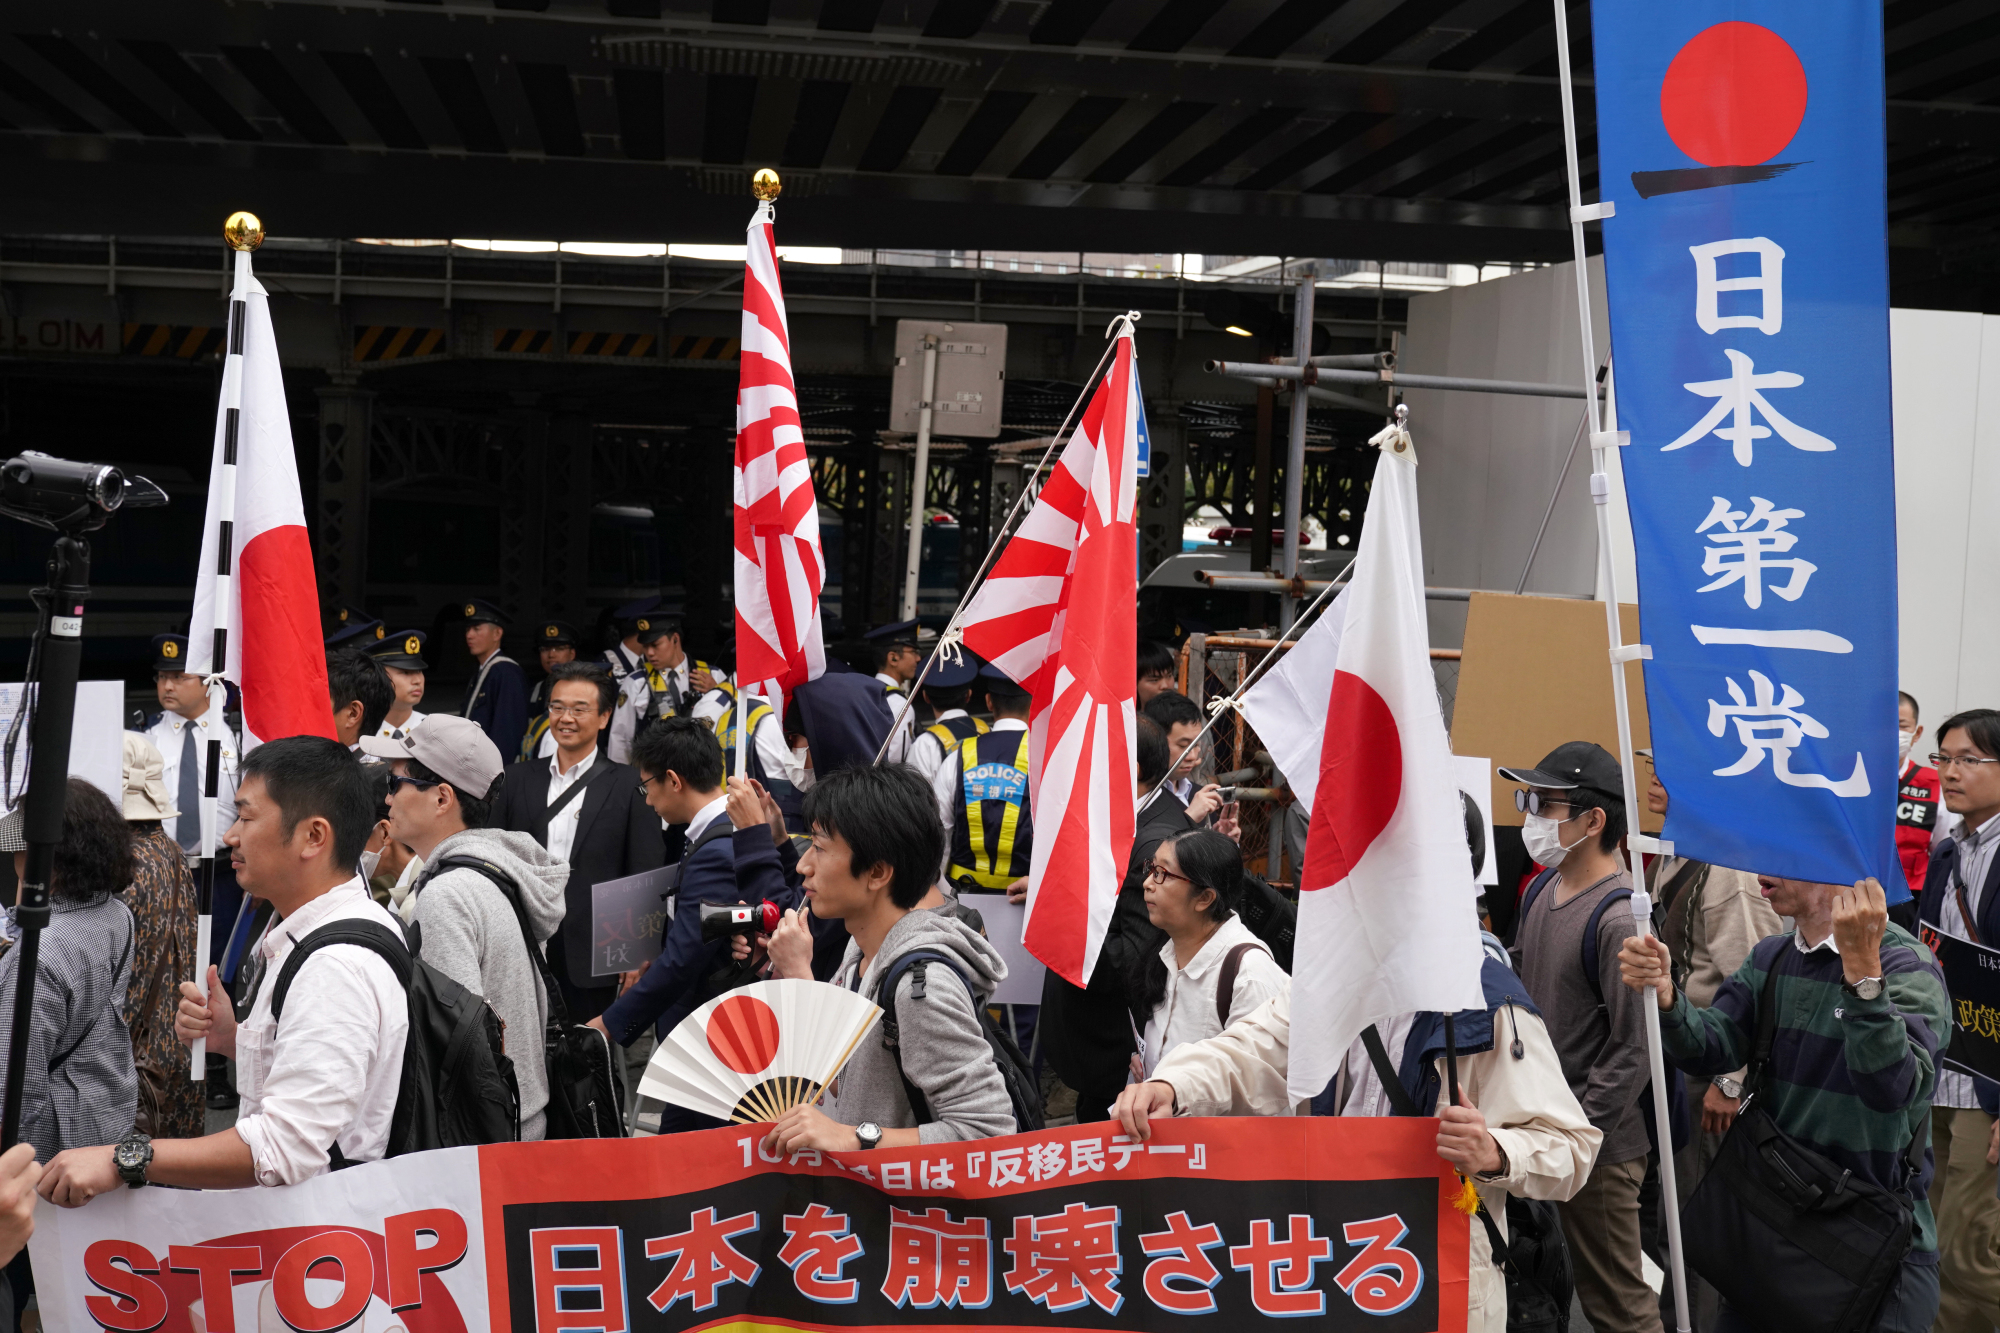 Demonstrators wave flags as they march during a rally against Prime Minister Shinzo Abe's proposed legislation regarding foreign workers in Tokyo on Sunday. The Japanese government submitted an outline to a panel of ministers on Friday in a step toward admitting more foreign workers amid a worsening labor shortage. | BLOOMBERG